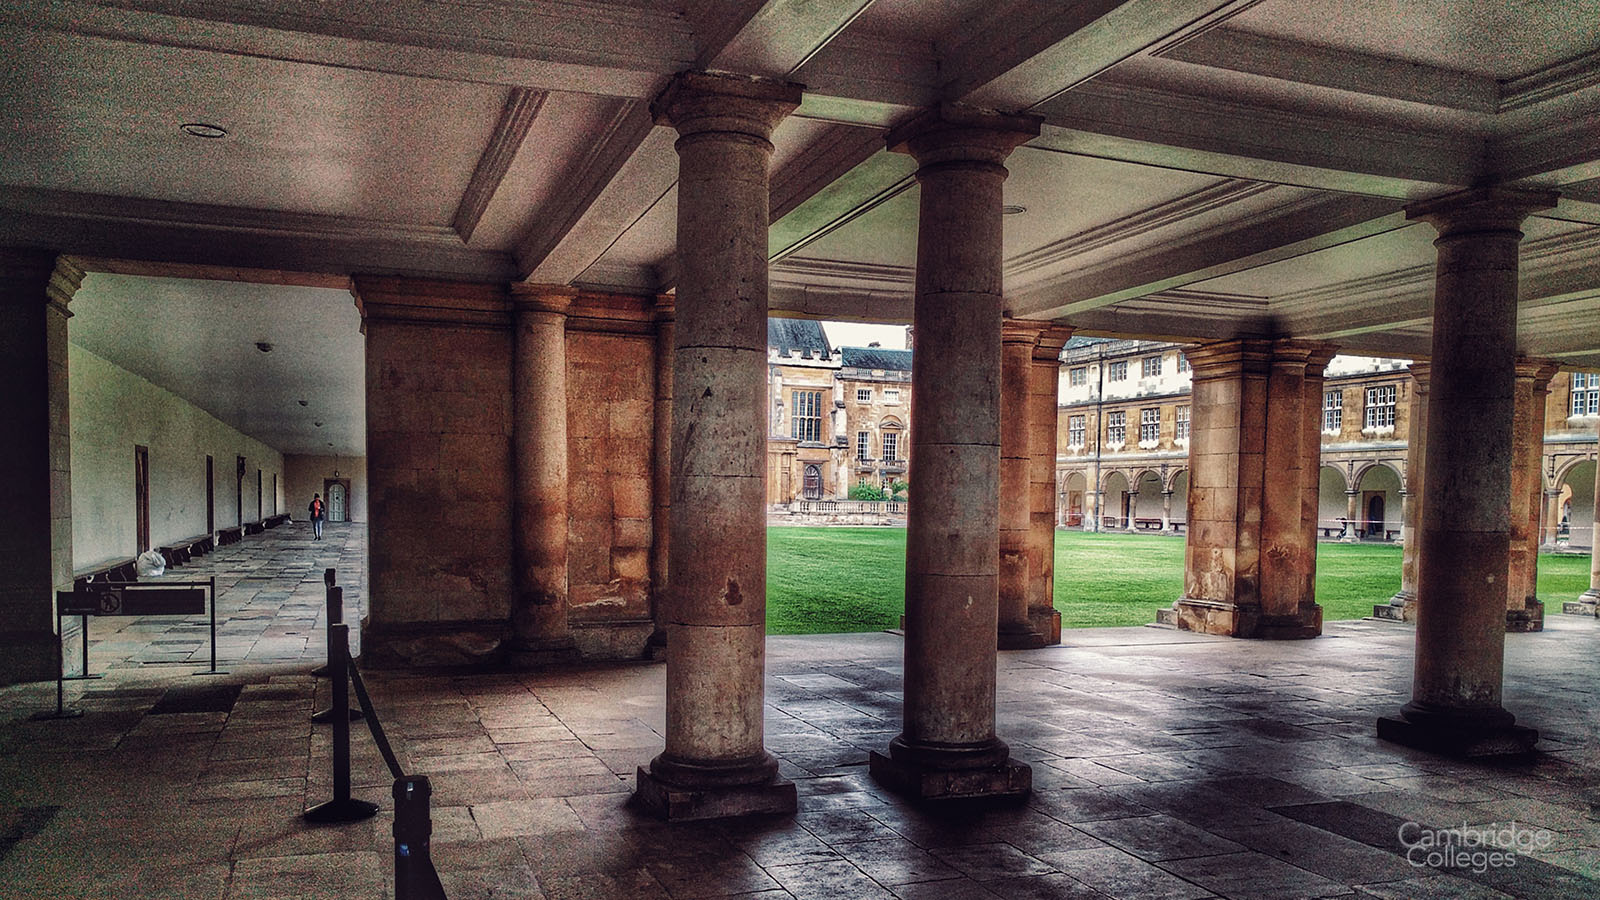 The open cloister underneath the Wren library